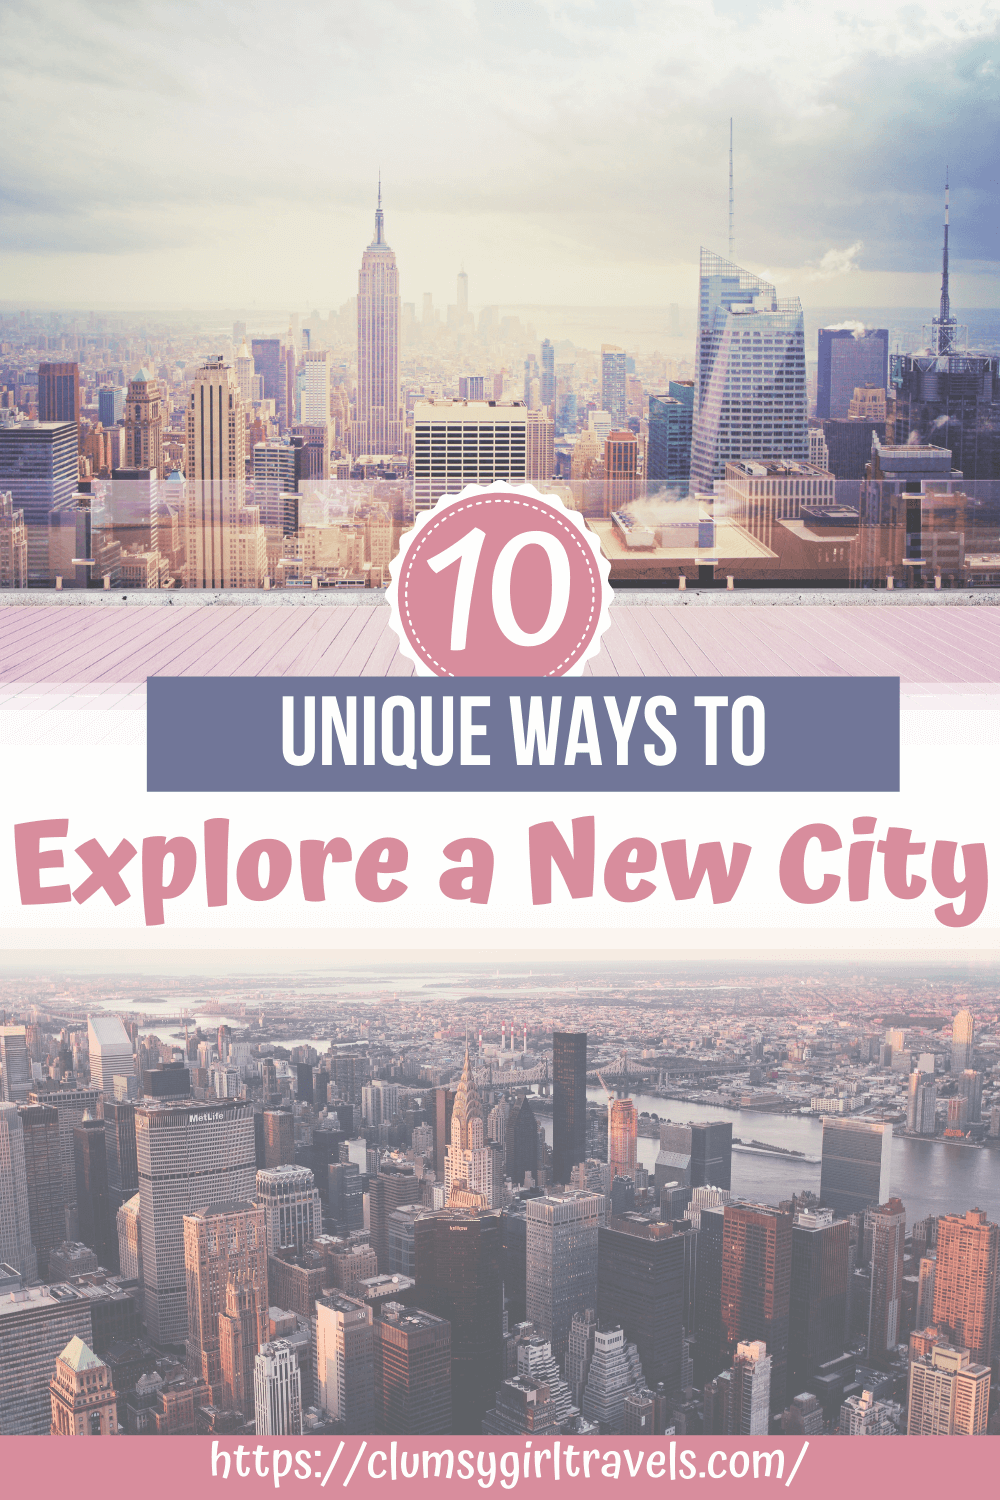 Do you want different and unique ways to explore a new city? Not to worry! Here are 10 ideas on how you can explore a new city. #exploreanewcity #visitinganewcity